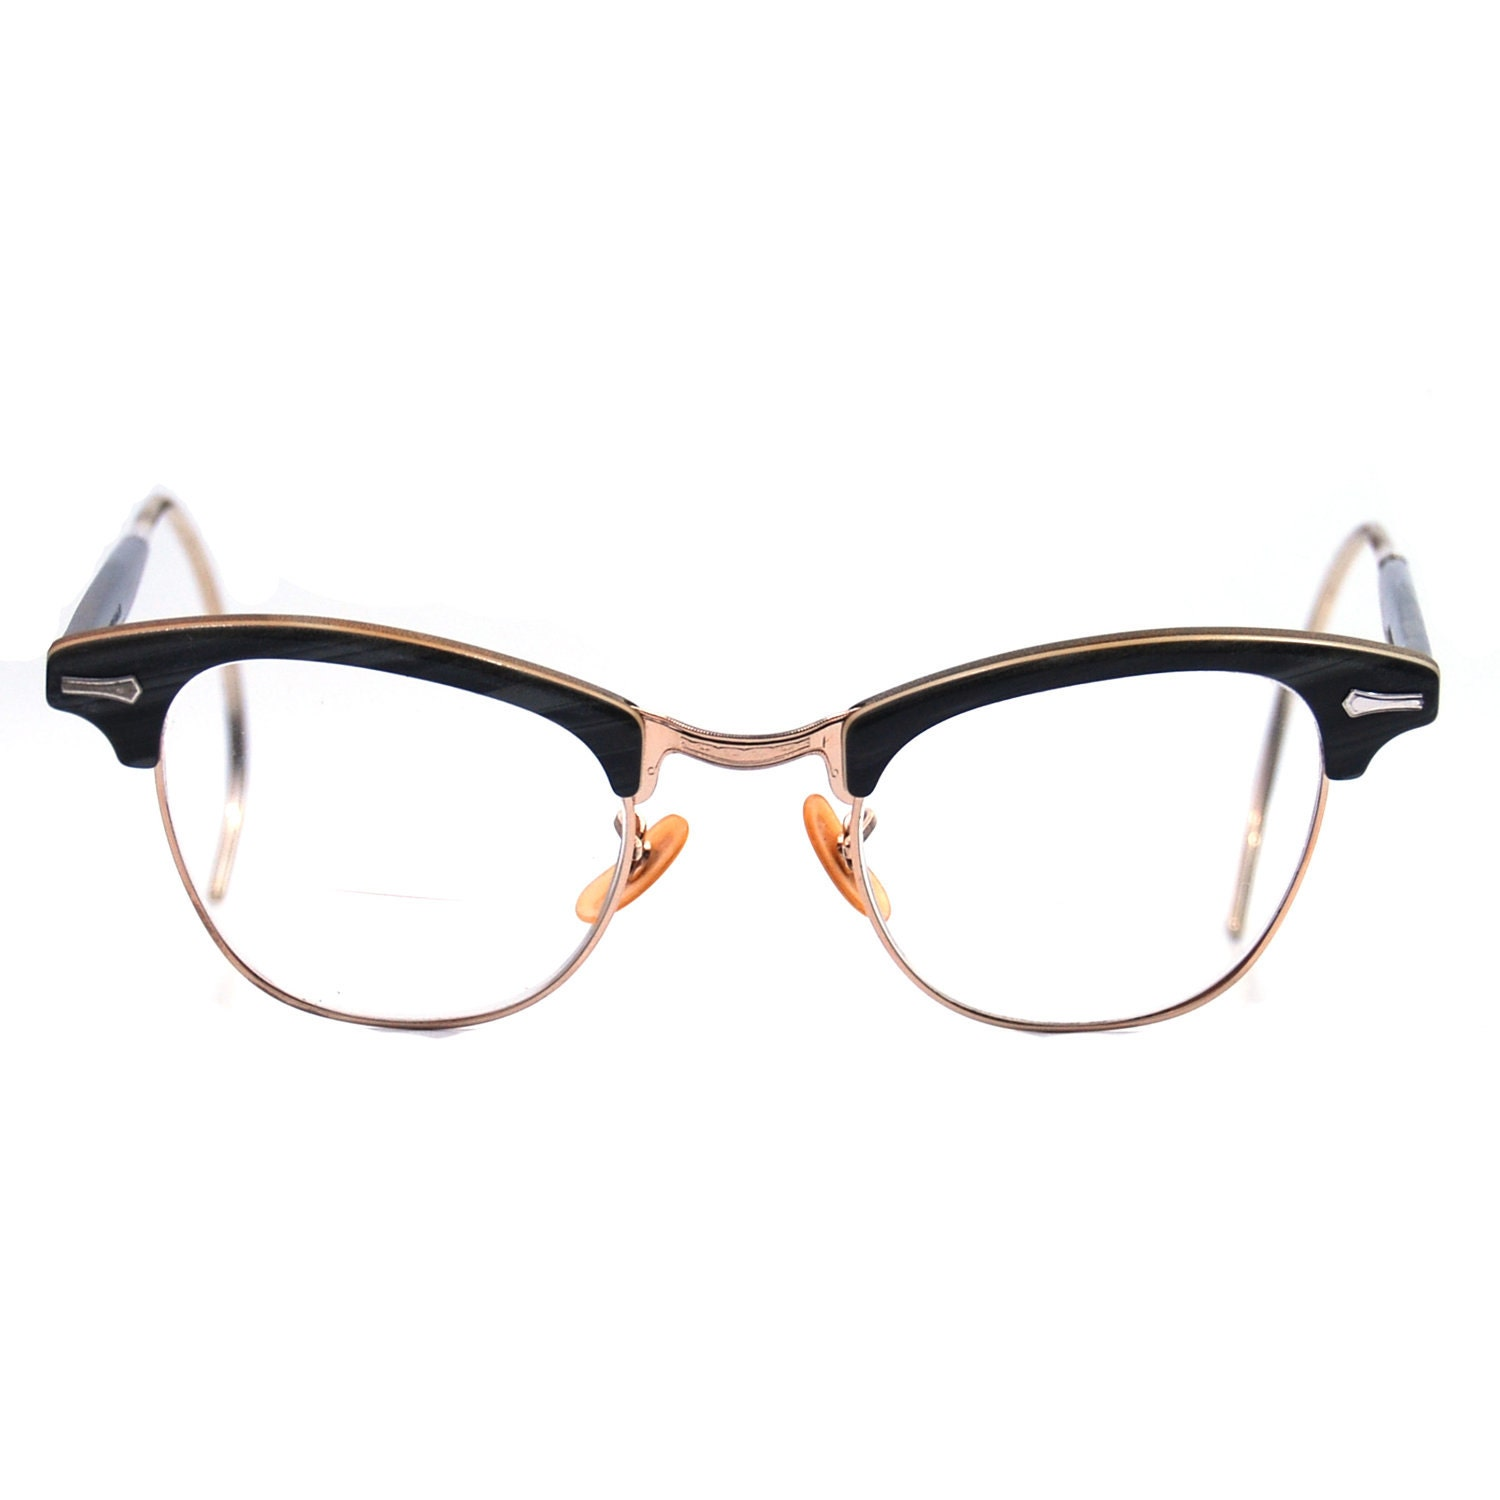 Vintage Eyeglasses Gold Filled Shuron Gray and Black by ...